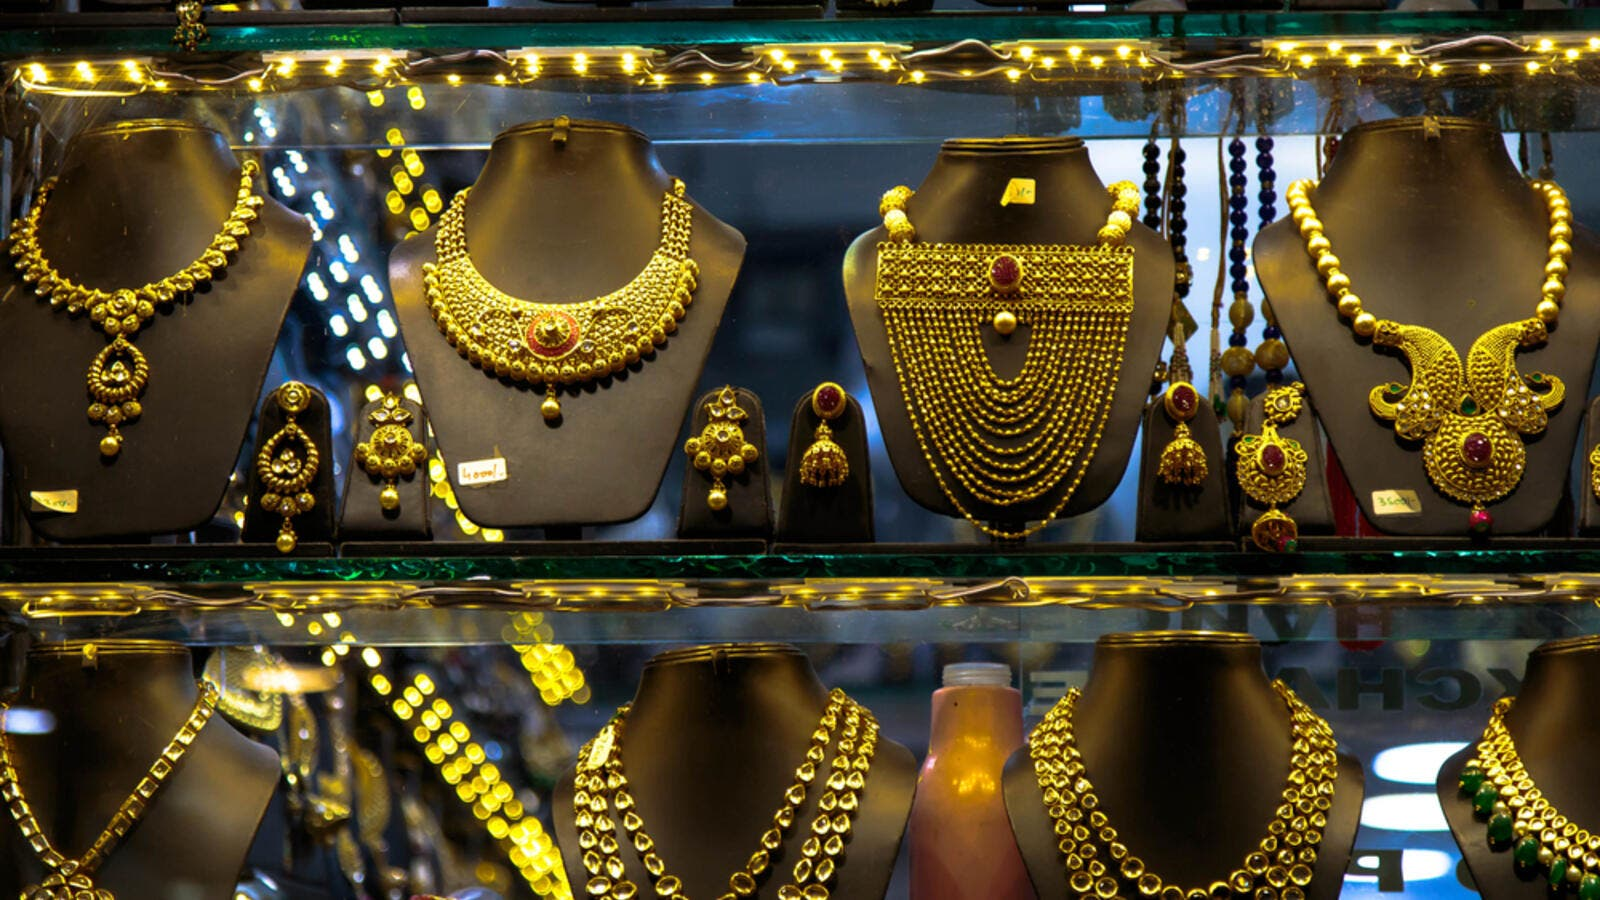 In the international market on Monday, gold prices rose over $250 per ounce to $1,500 per ounce as compared to last year.